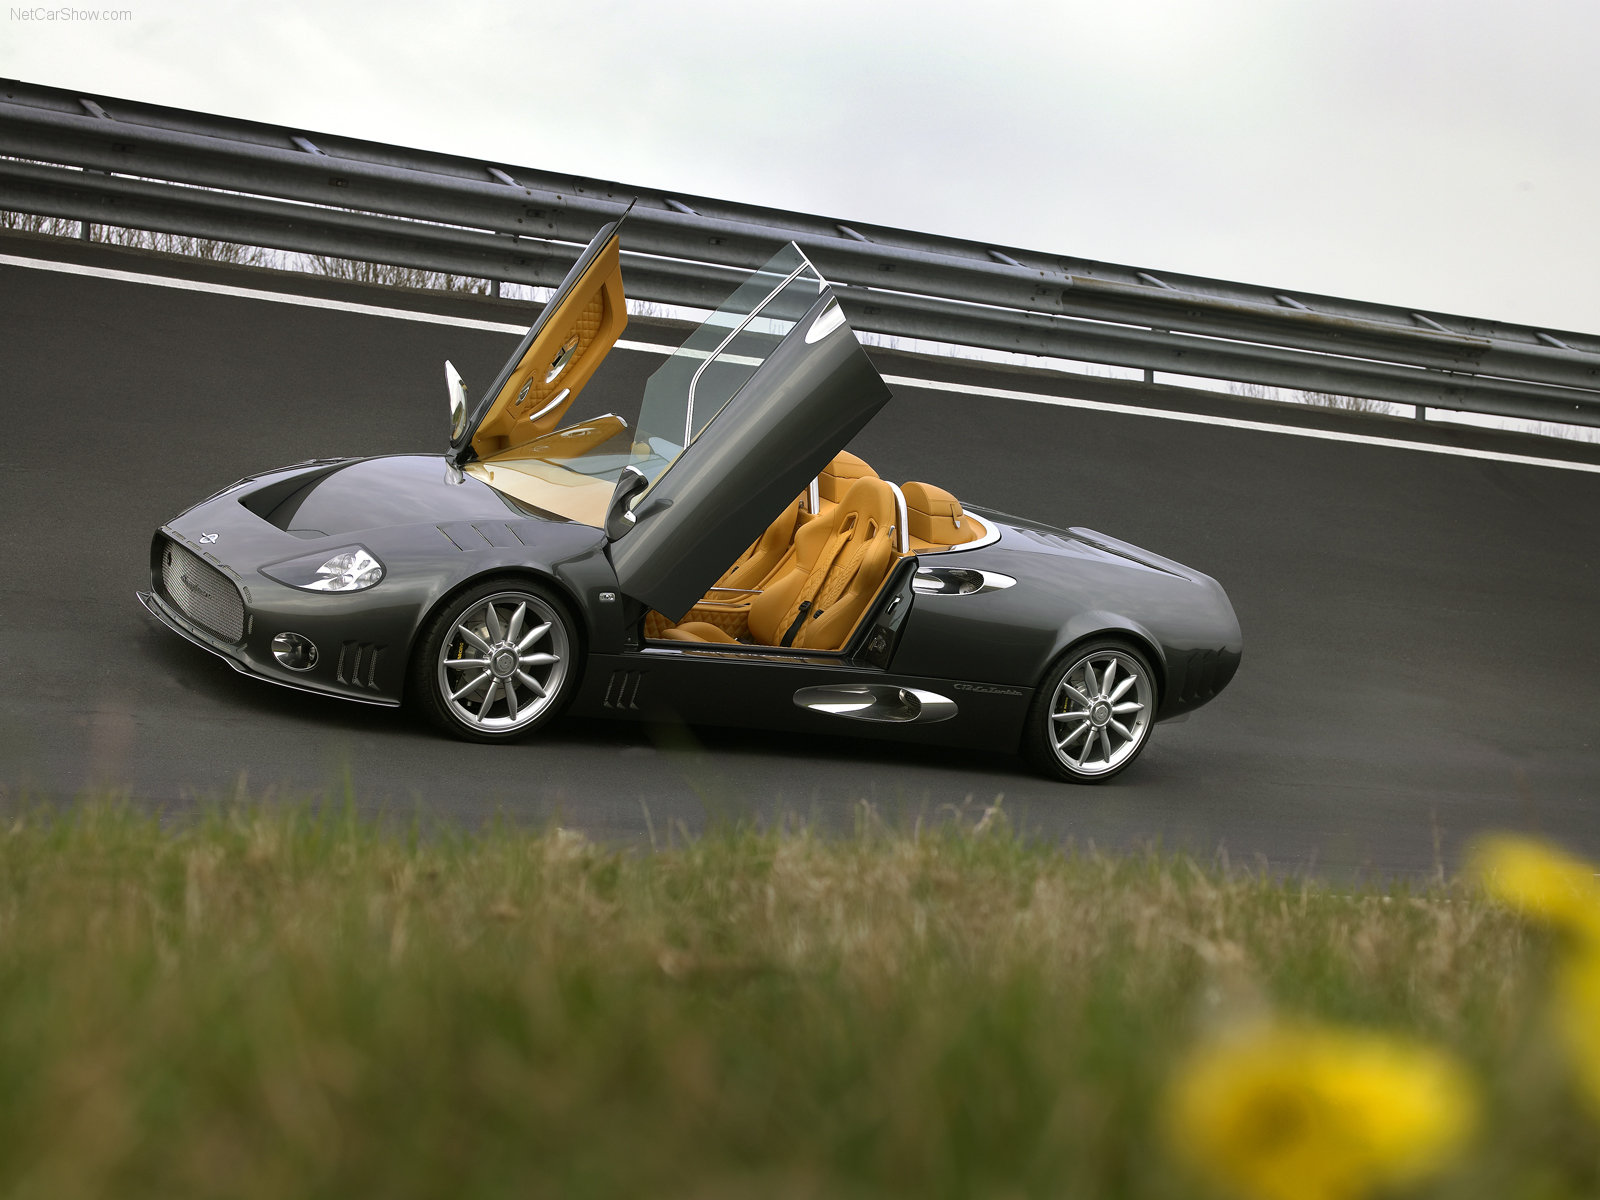 Spyker C12 Laturbie photo 38336